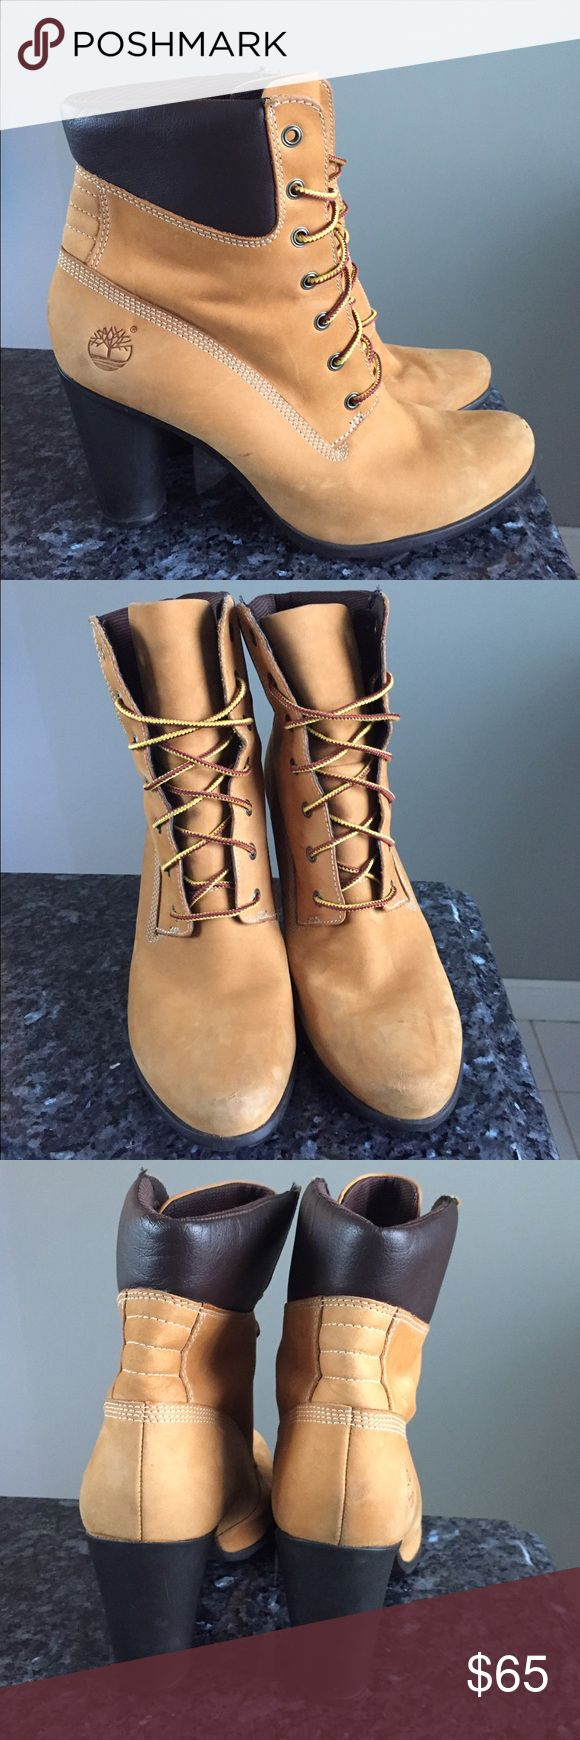 Women's Timberland High Heel boots size 7.5 Timberland heels size 7.5, they are used but for the most part Great condition :) Timberland Shoes Heels